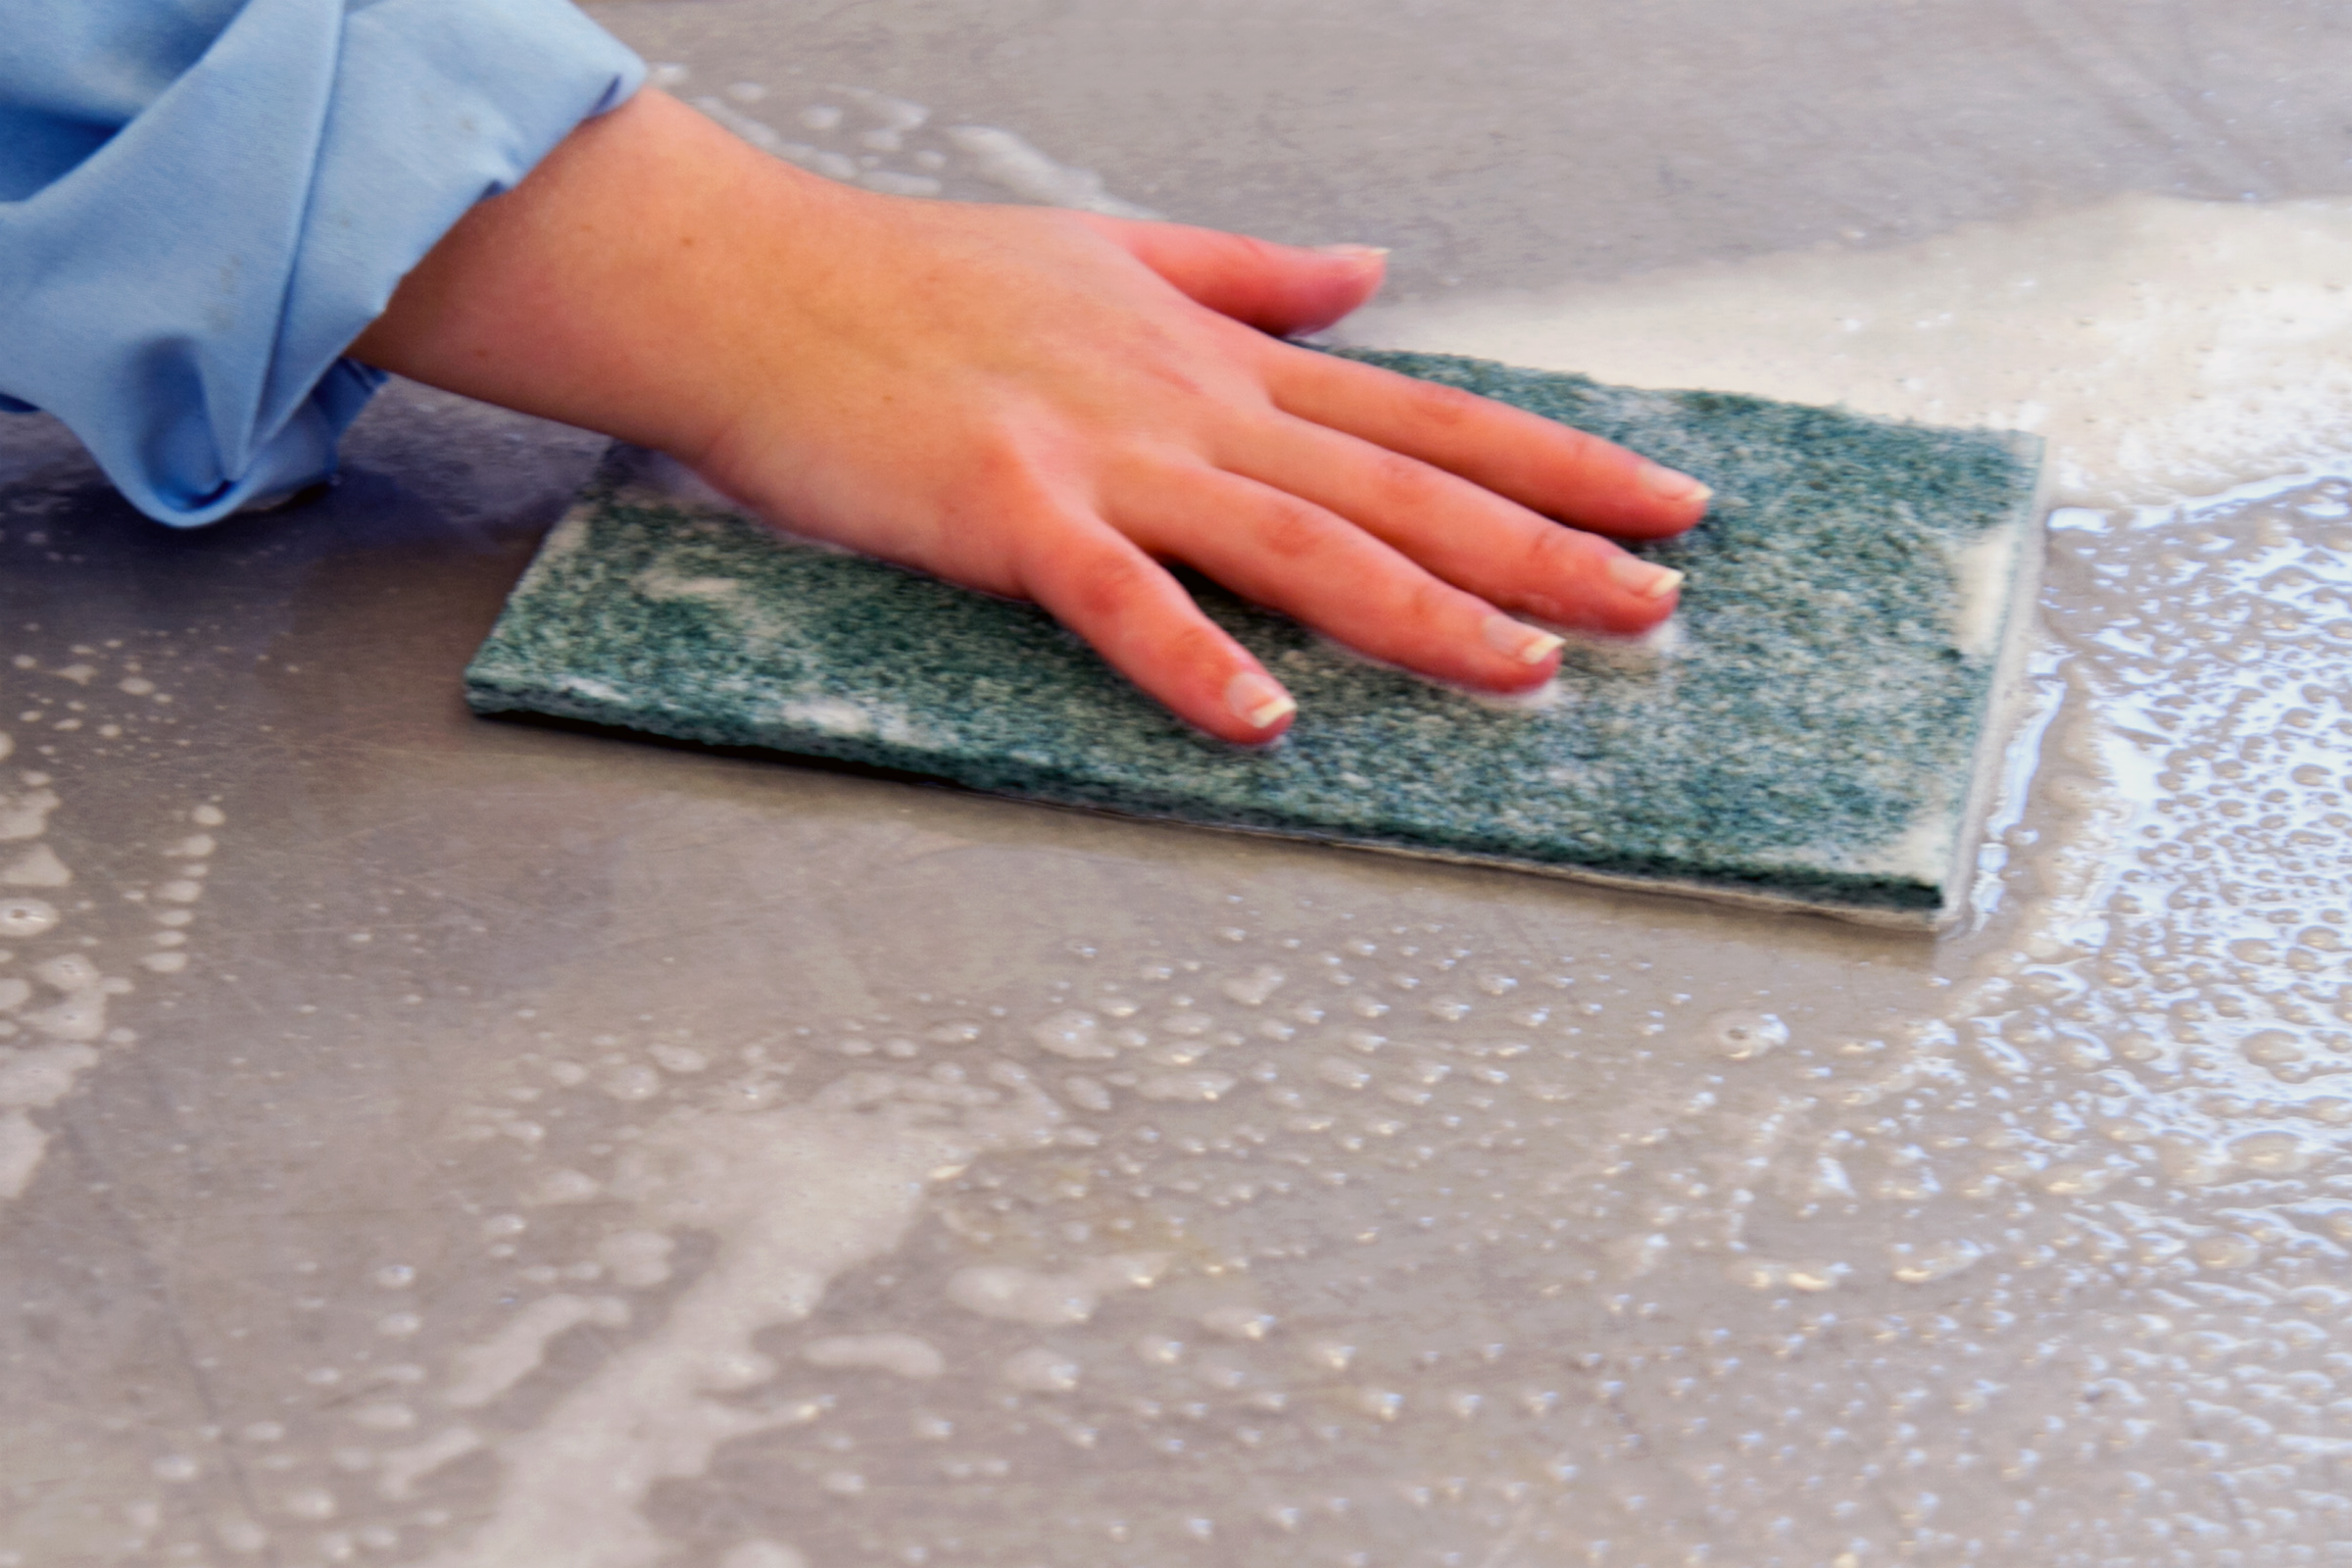 Cleaning surface - Kit nettoyage joint carrelage ...